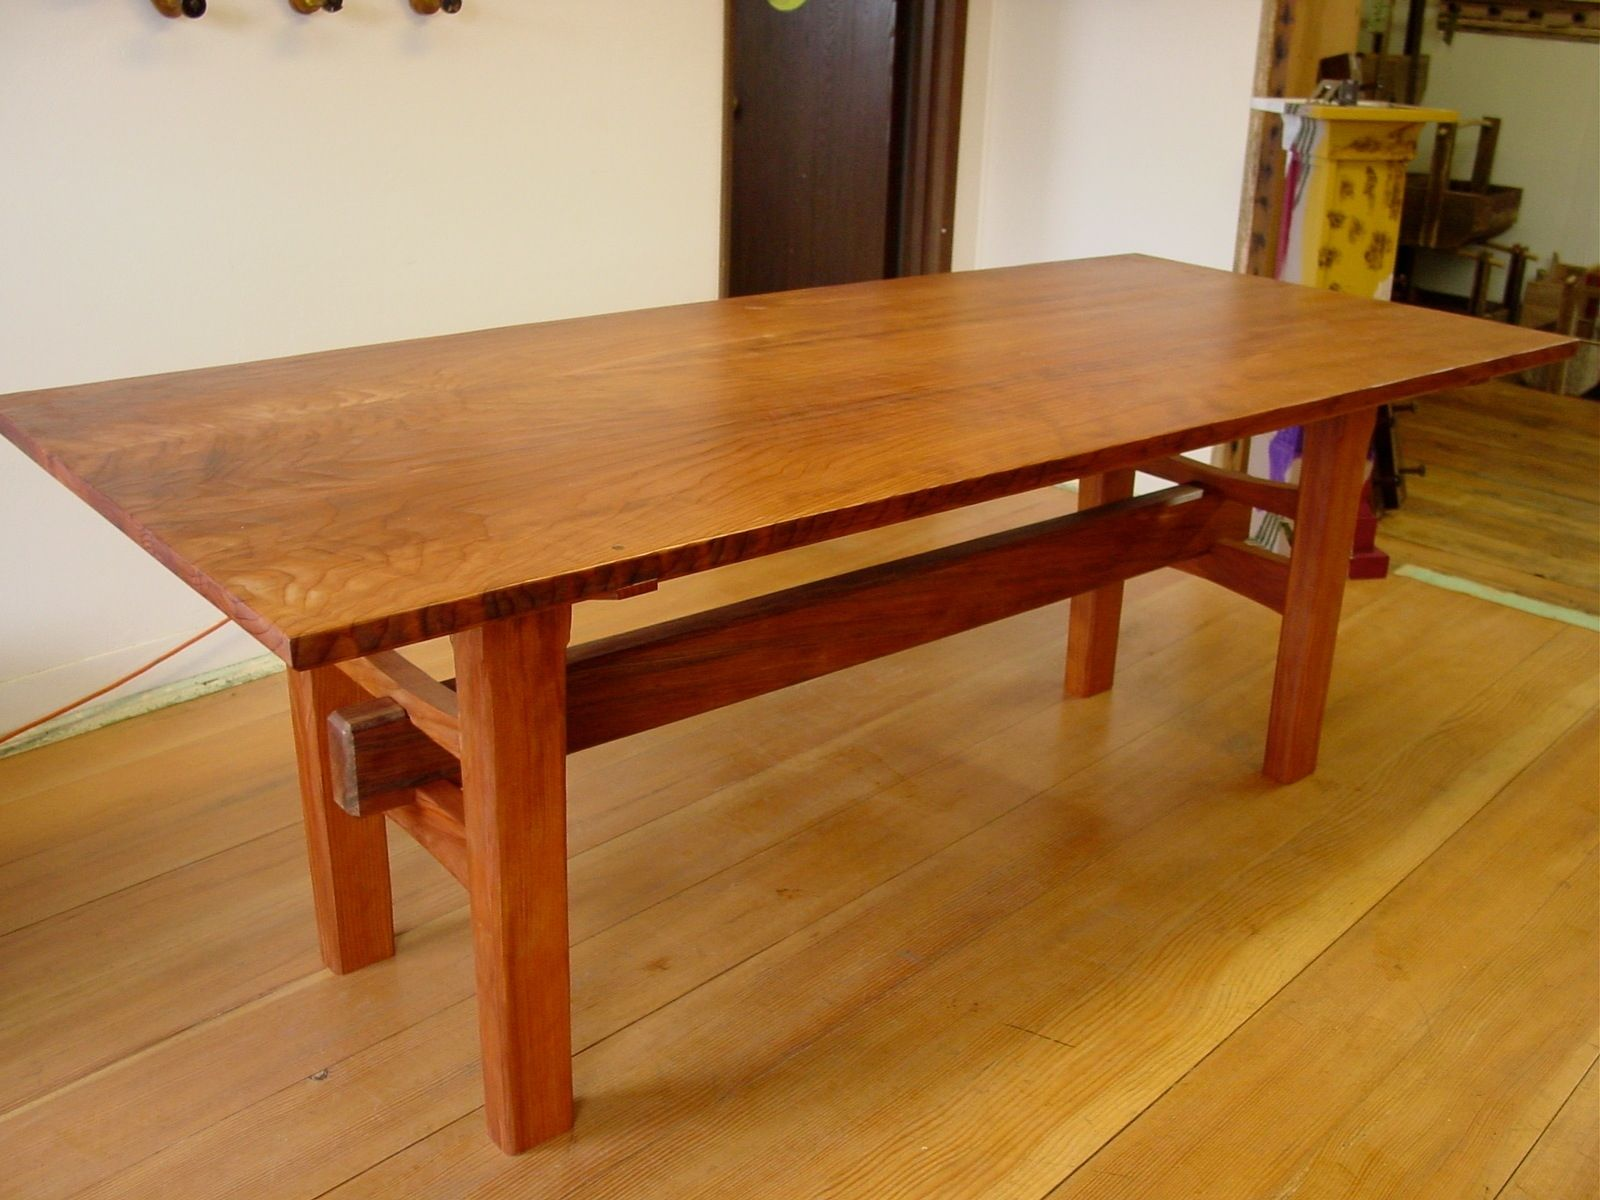 Redwood Table With Anese Joinery